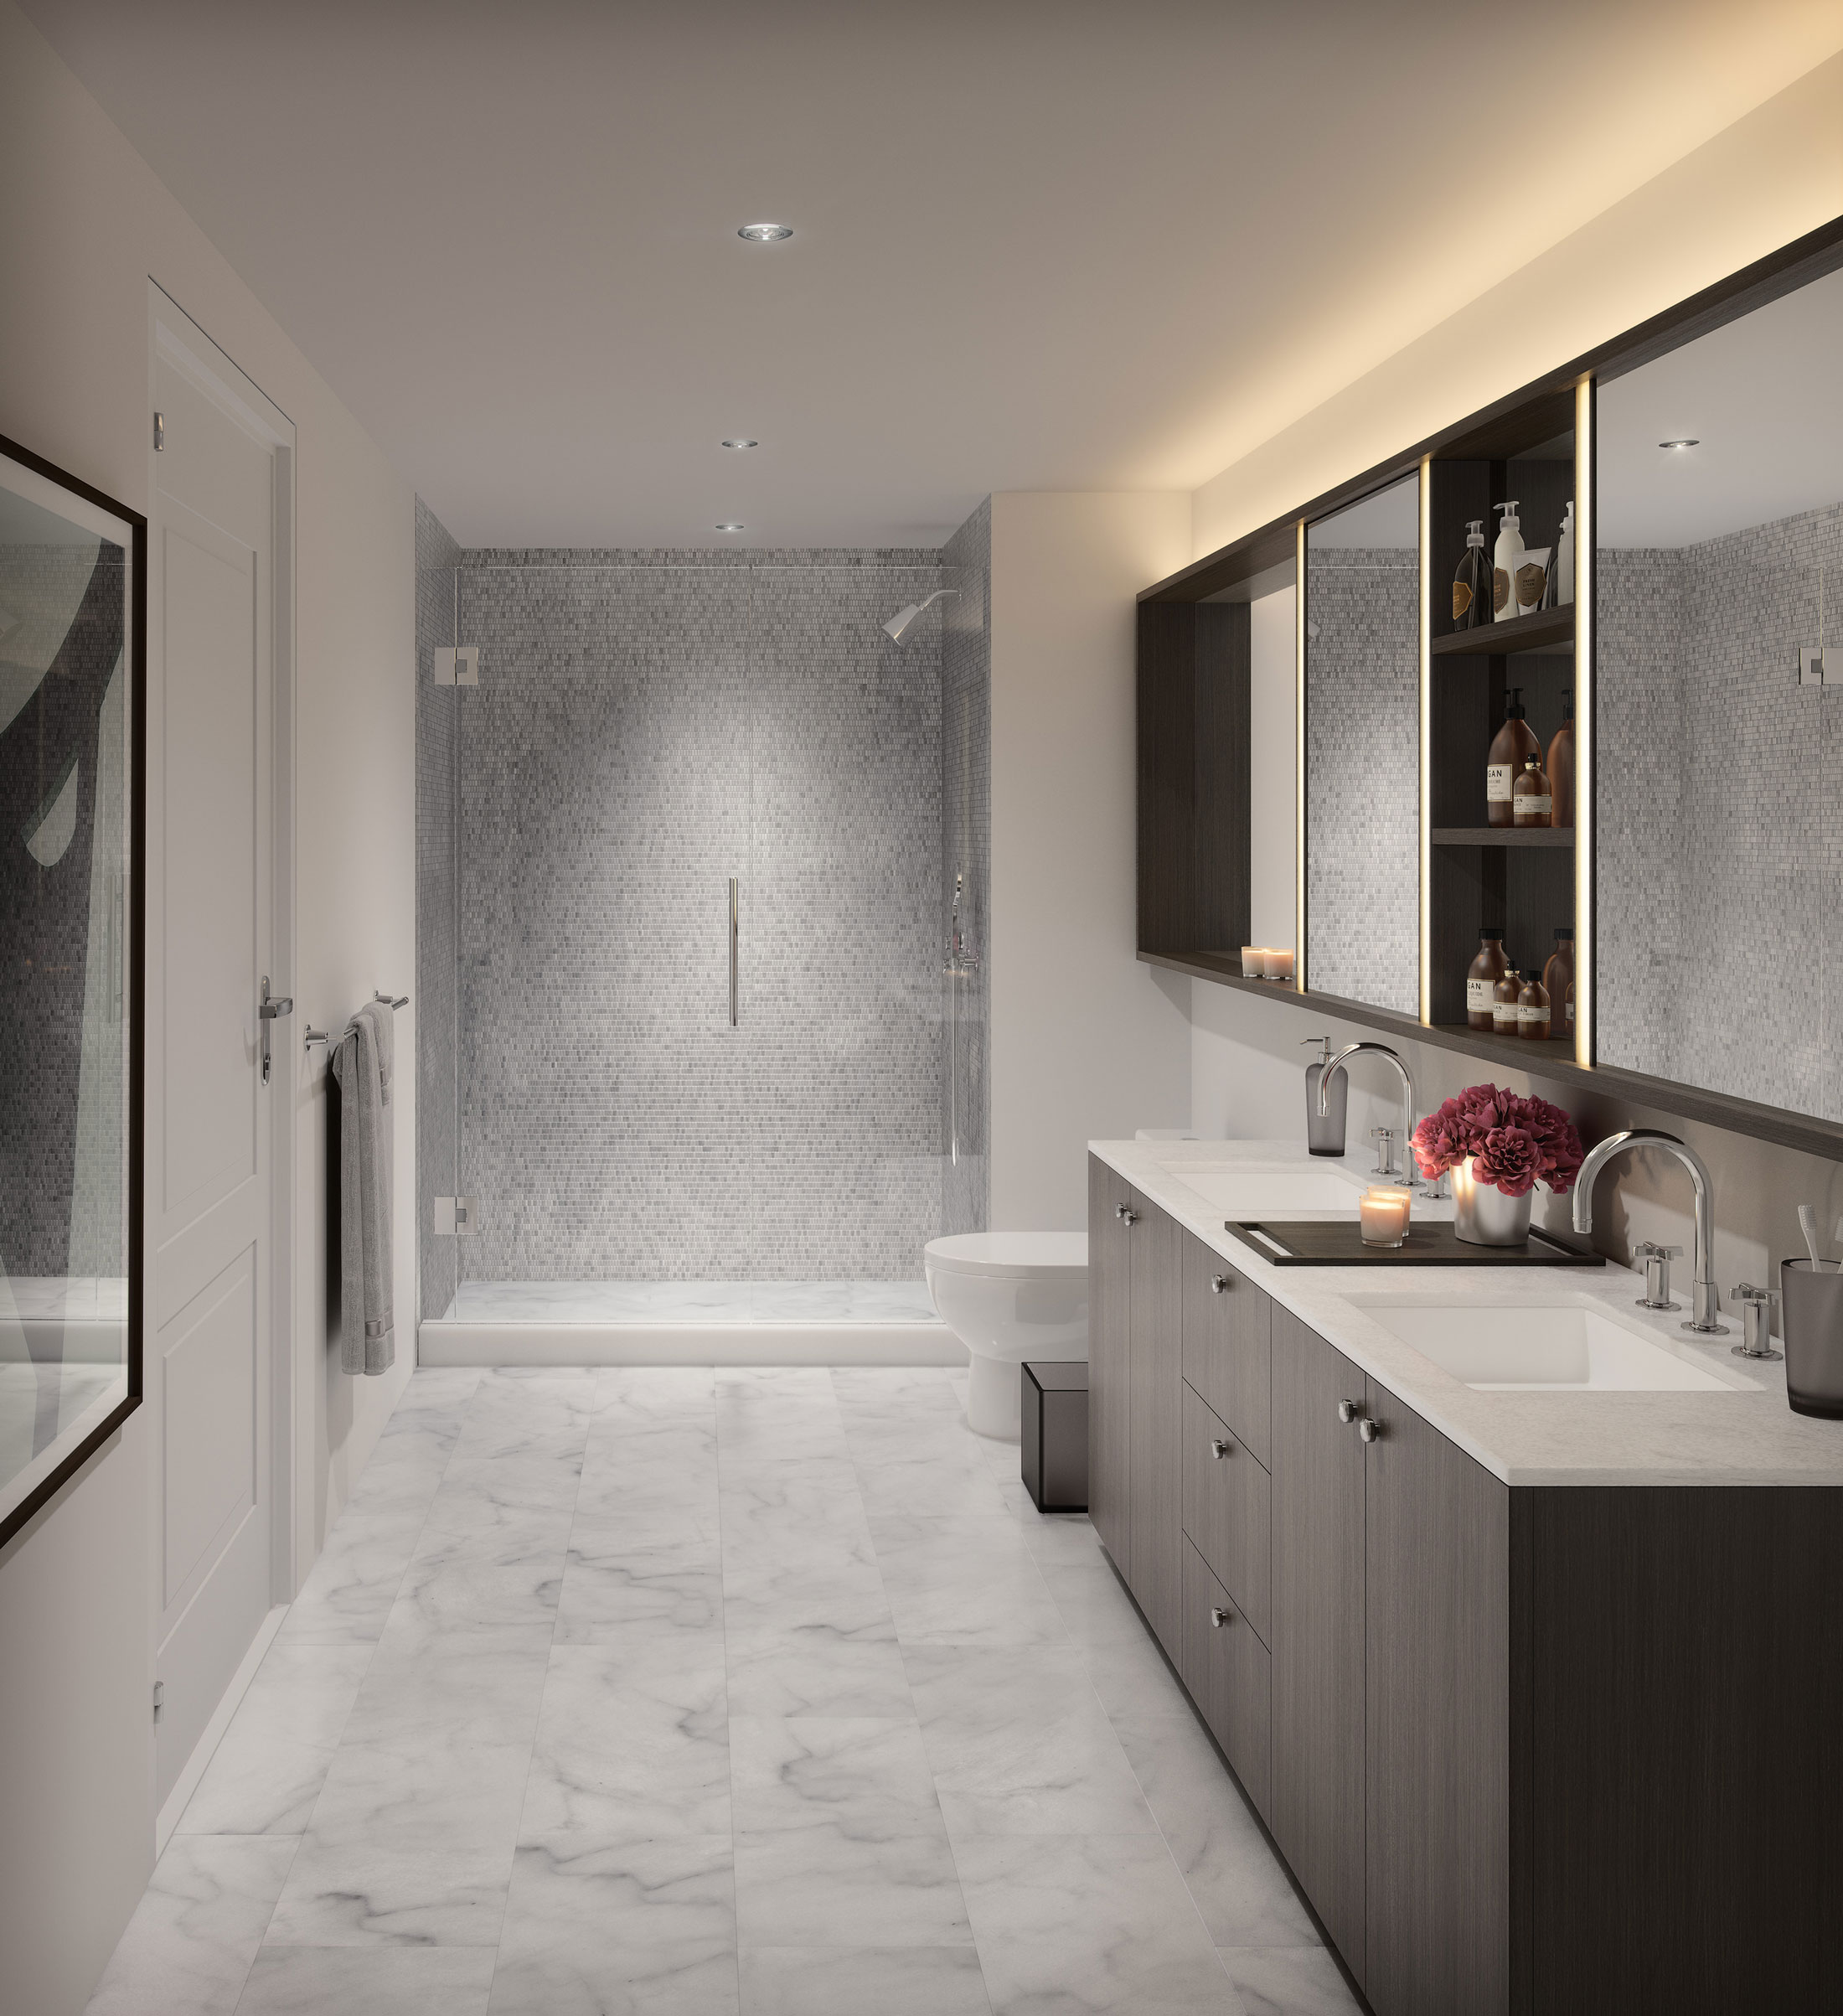 Architectural Rendering of one of the bathrooms on the One Hill South project located in Washington, DC